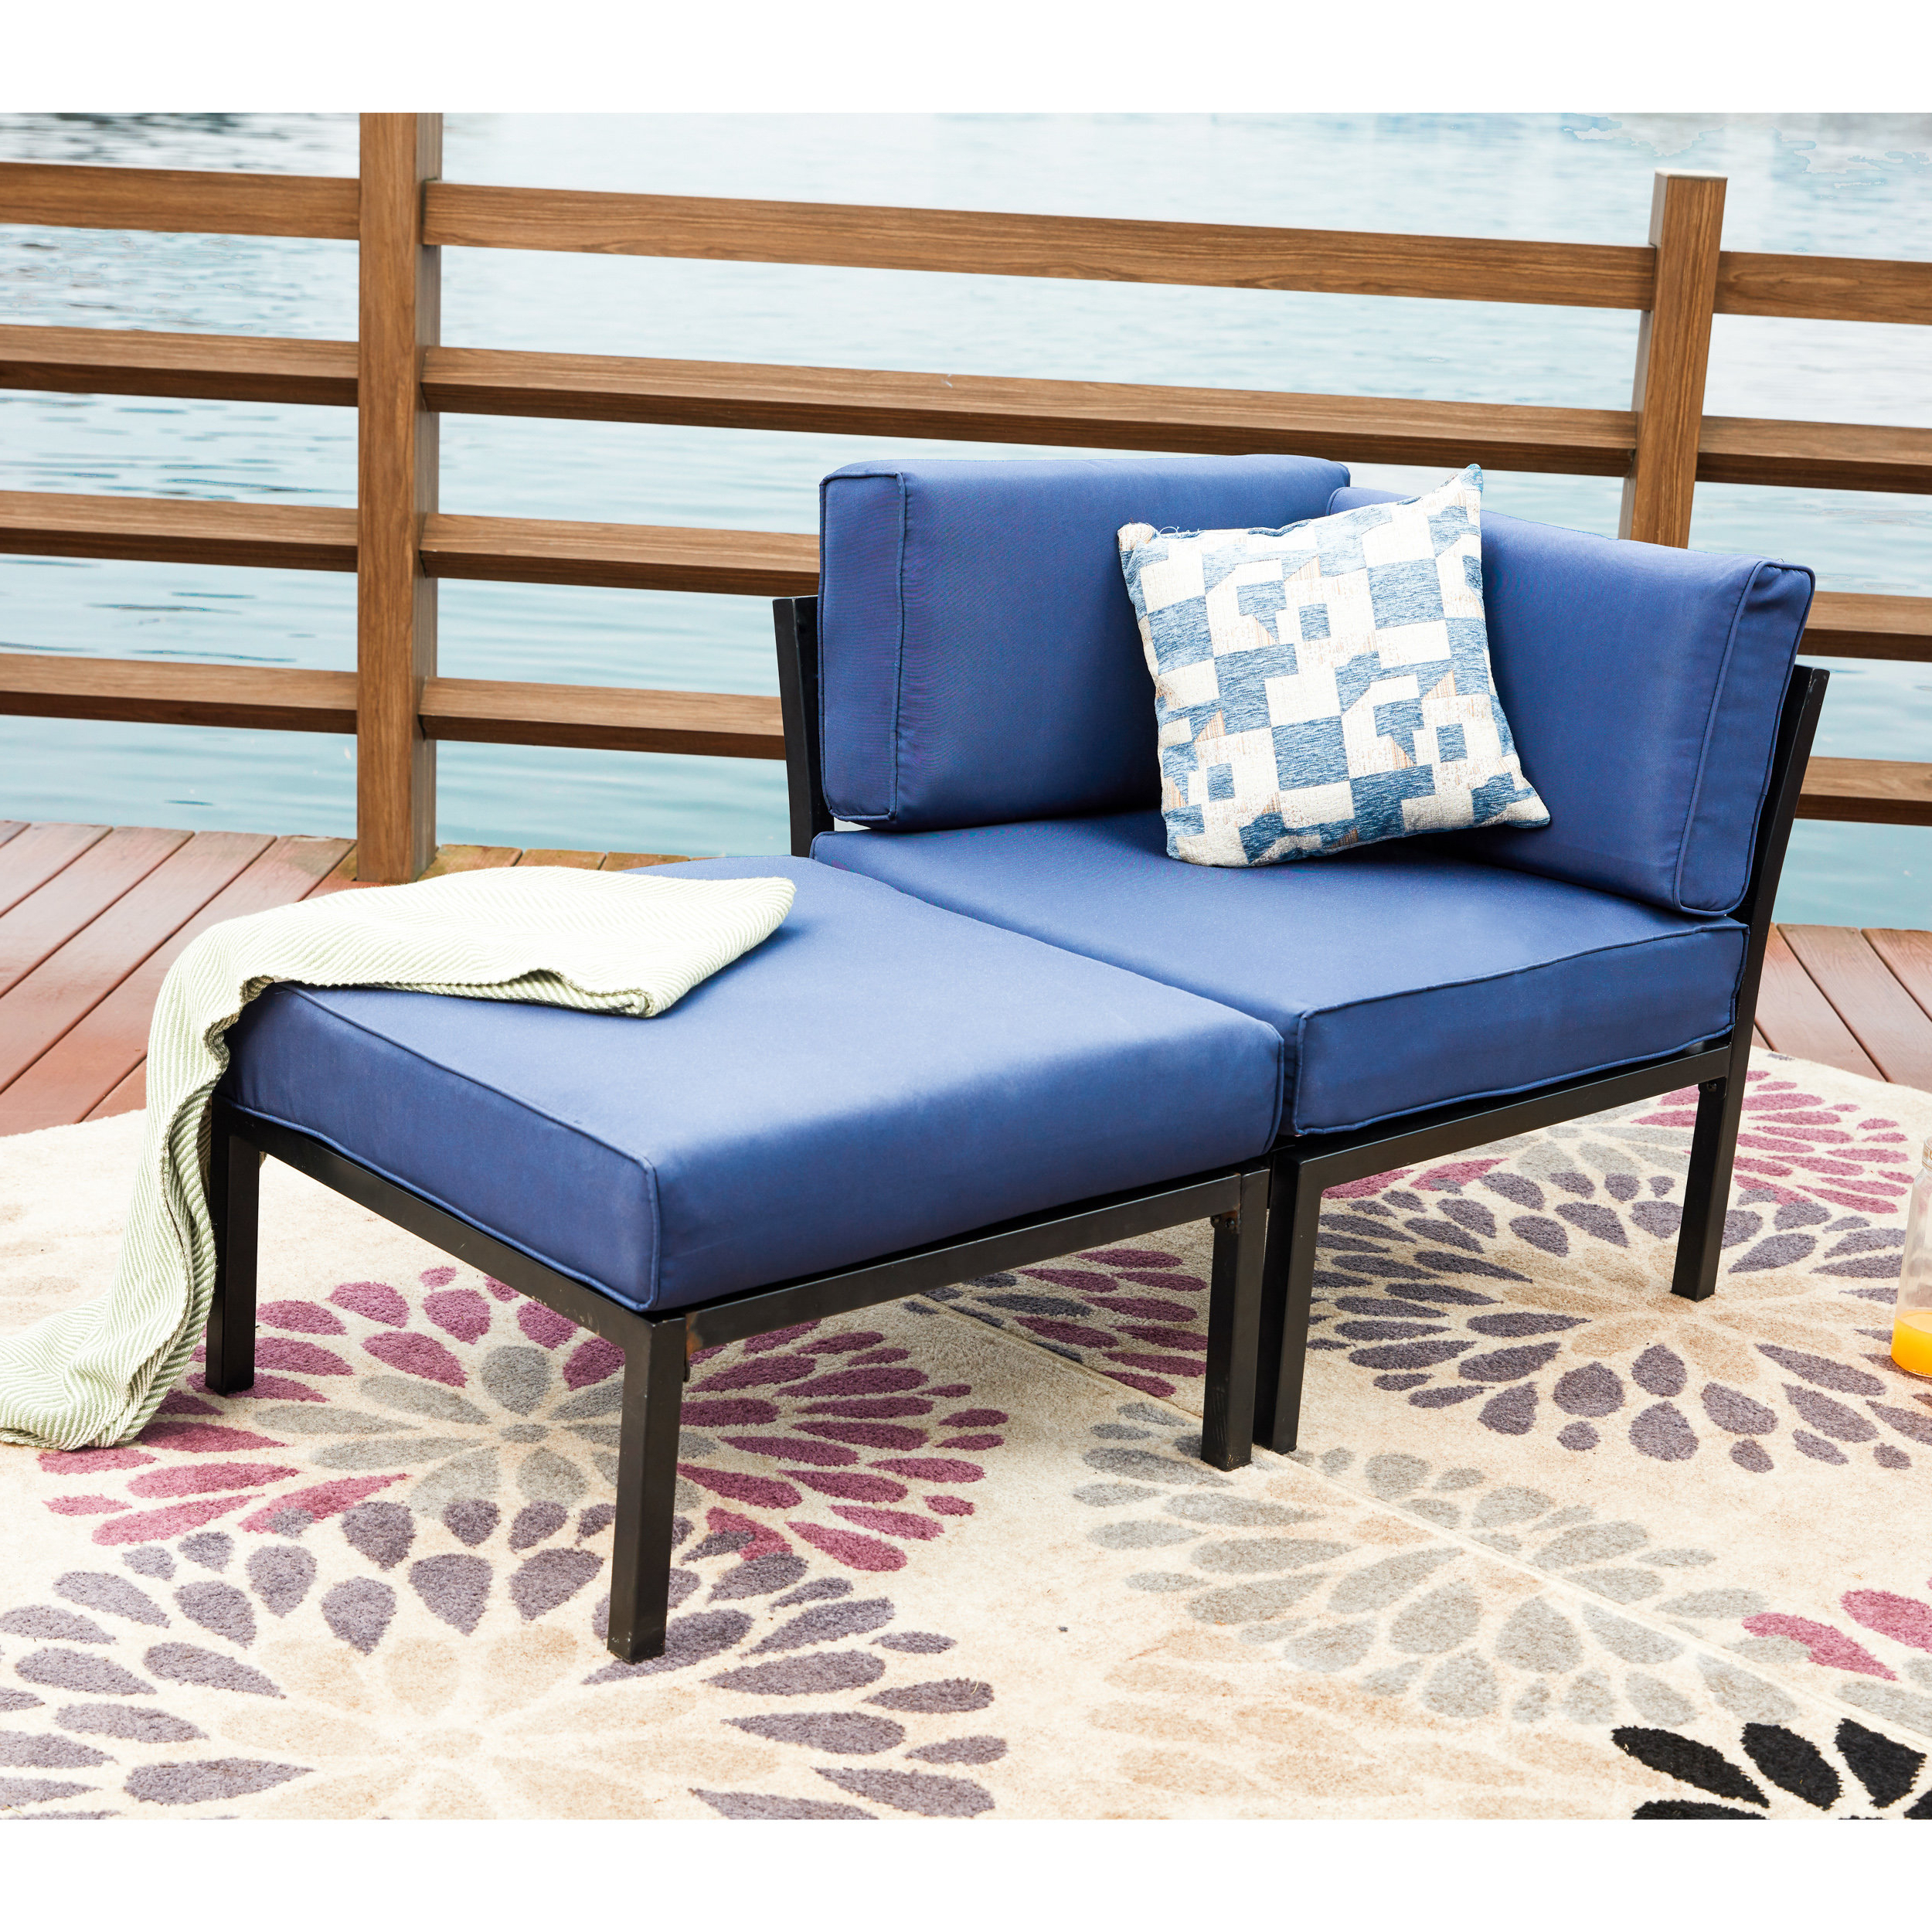 Preferred Payeur Loveseat With Cushions Throughout Bullock Outdoor Wooden Loveseats With Cushions (View 16 of 20)